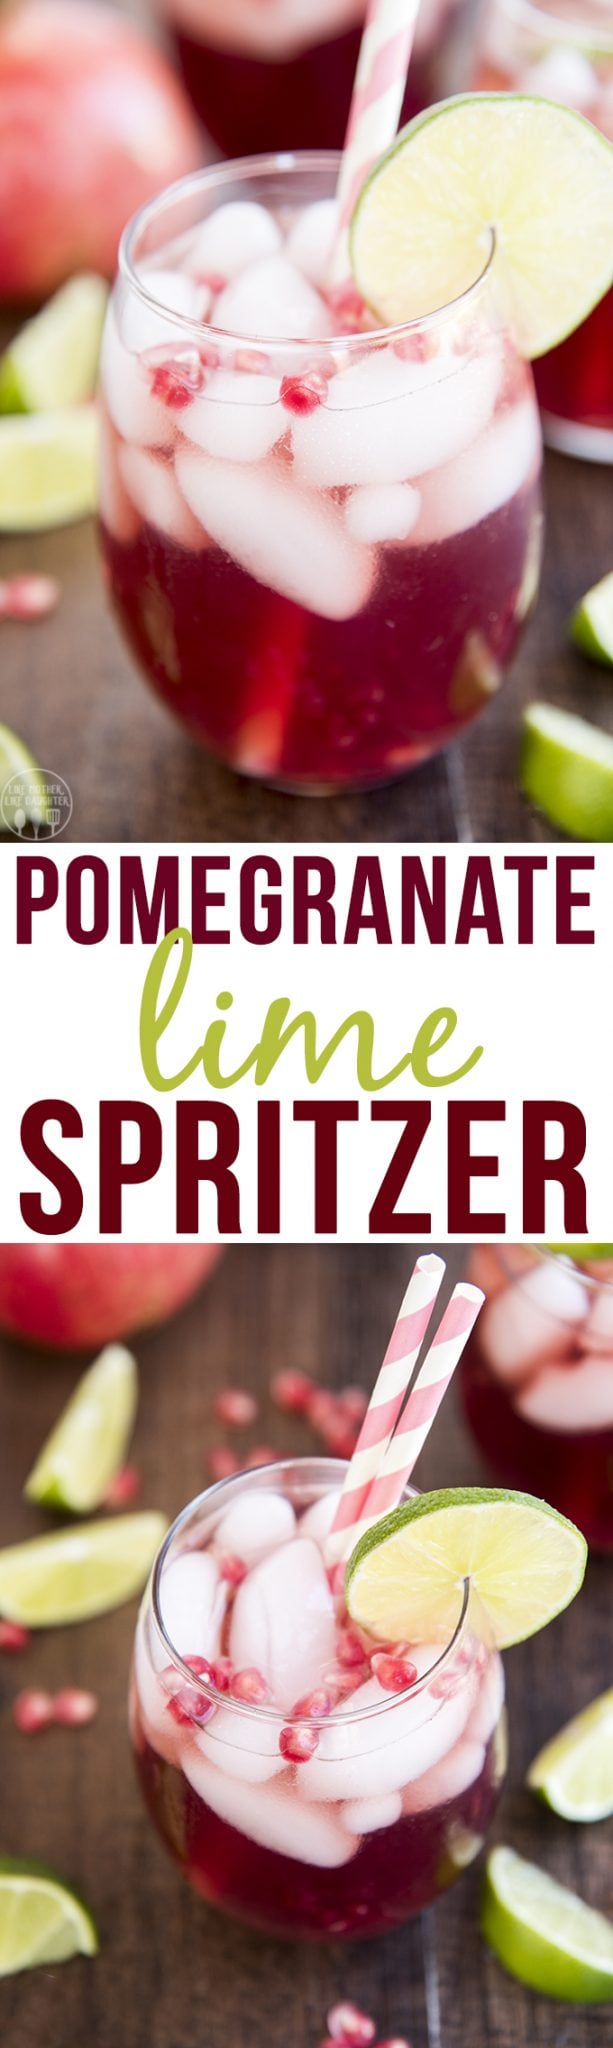 Pomegranate Lime Spritzer - This Spritzer is the perfect fall drinkwith minimal ingredients! Perfect for an easy and festive drink for the holidays!